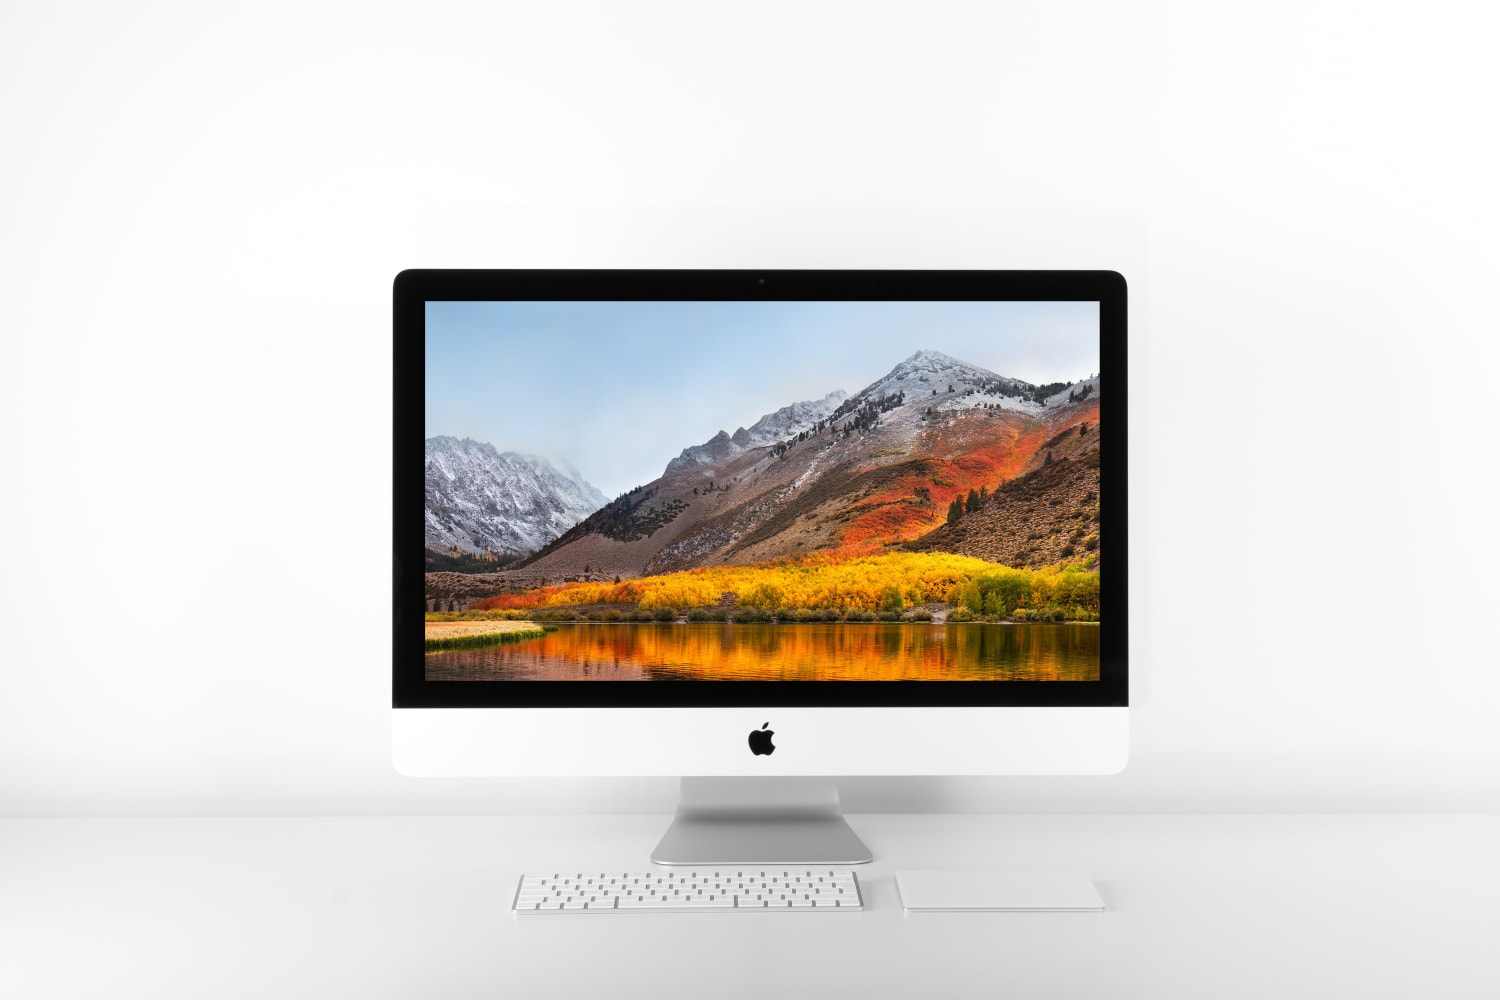 apple-releases-new-27-inch-imac-with-improved-graphics-ram-and-more-20200804-1